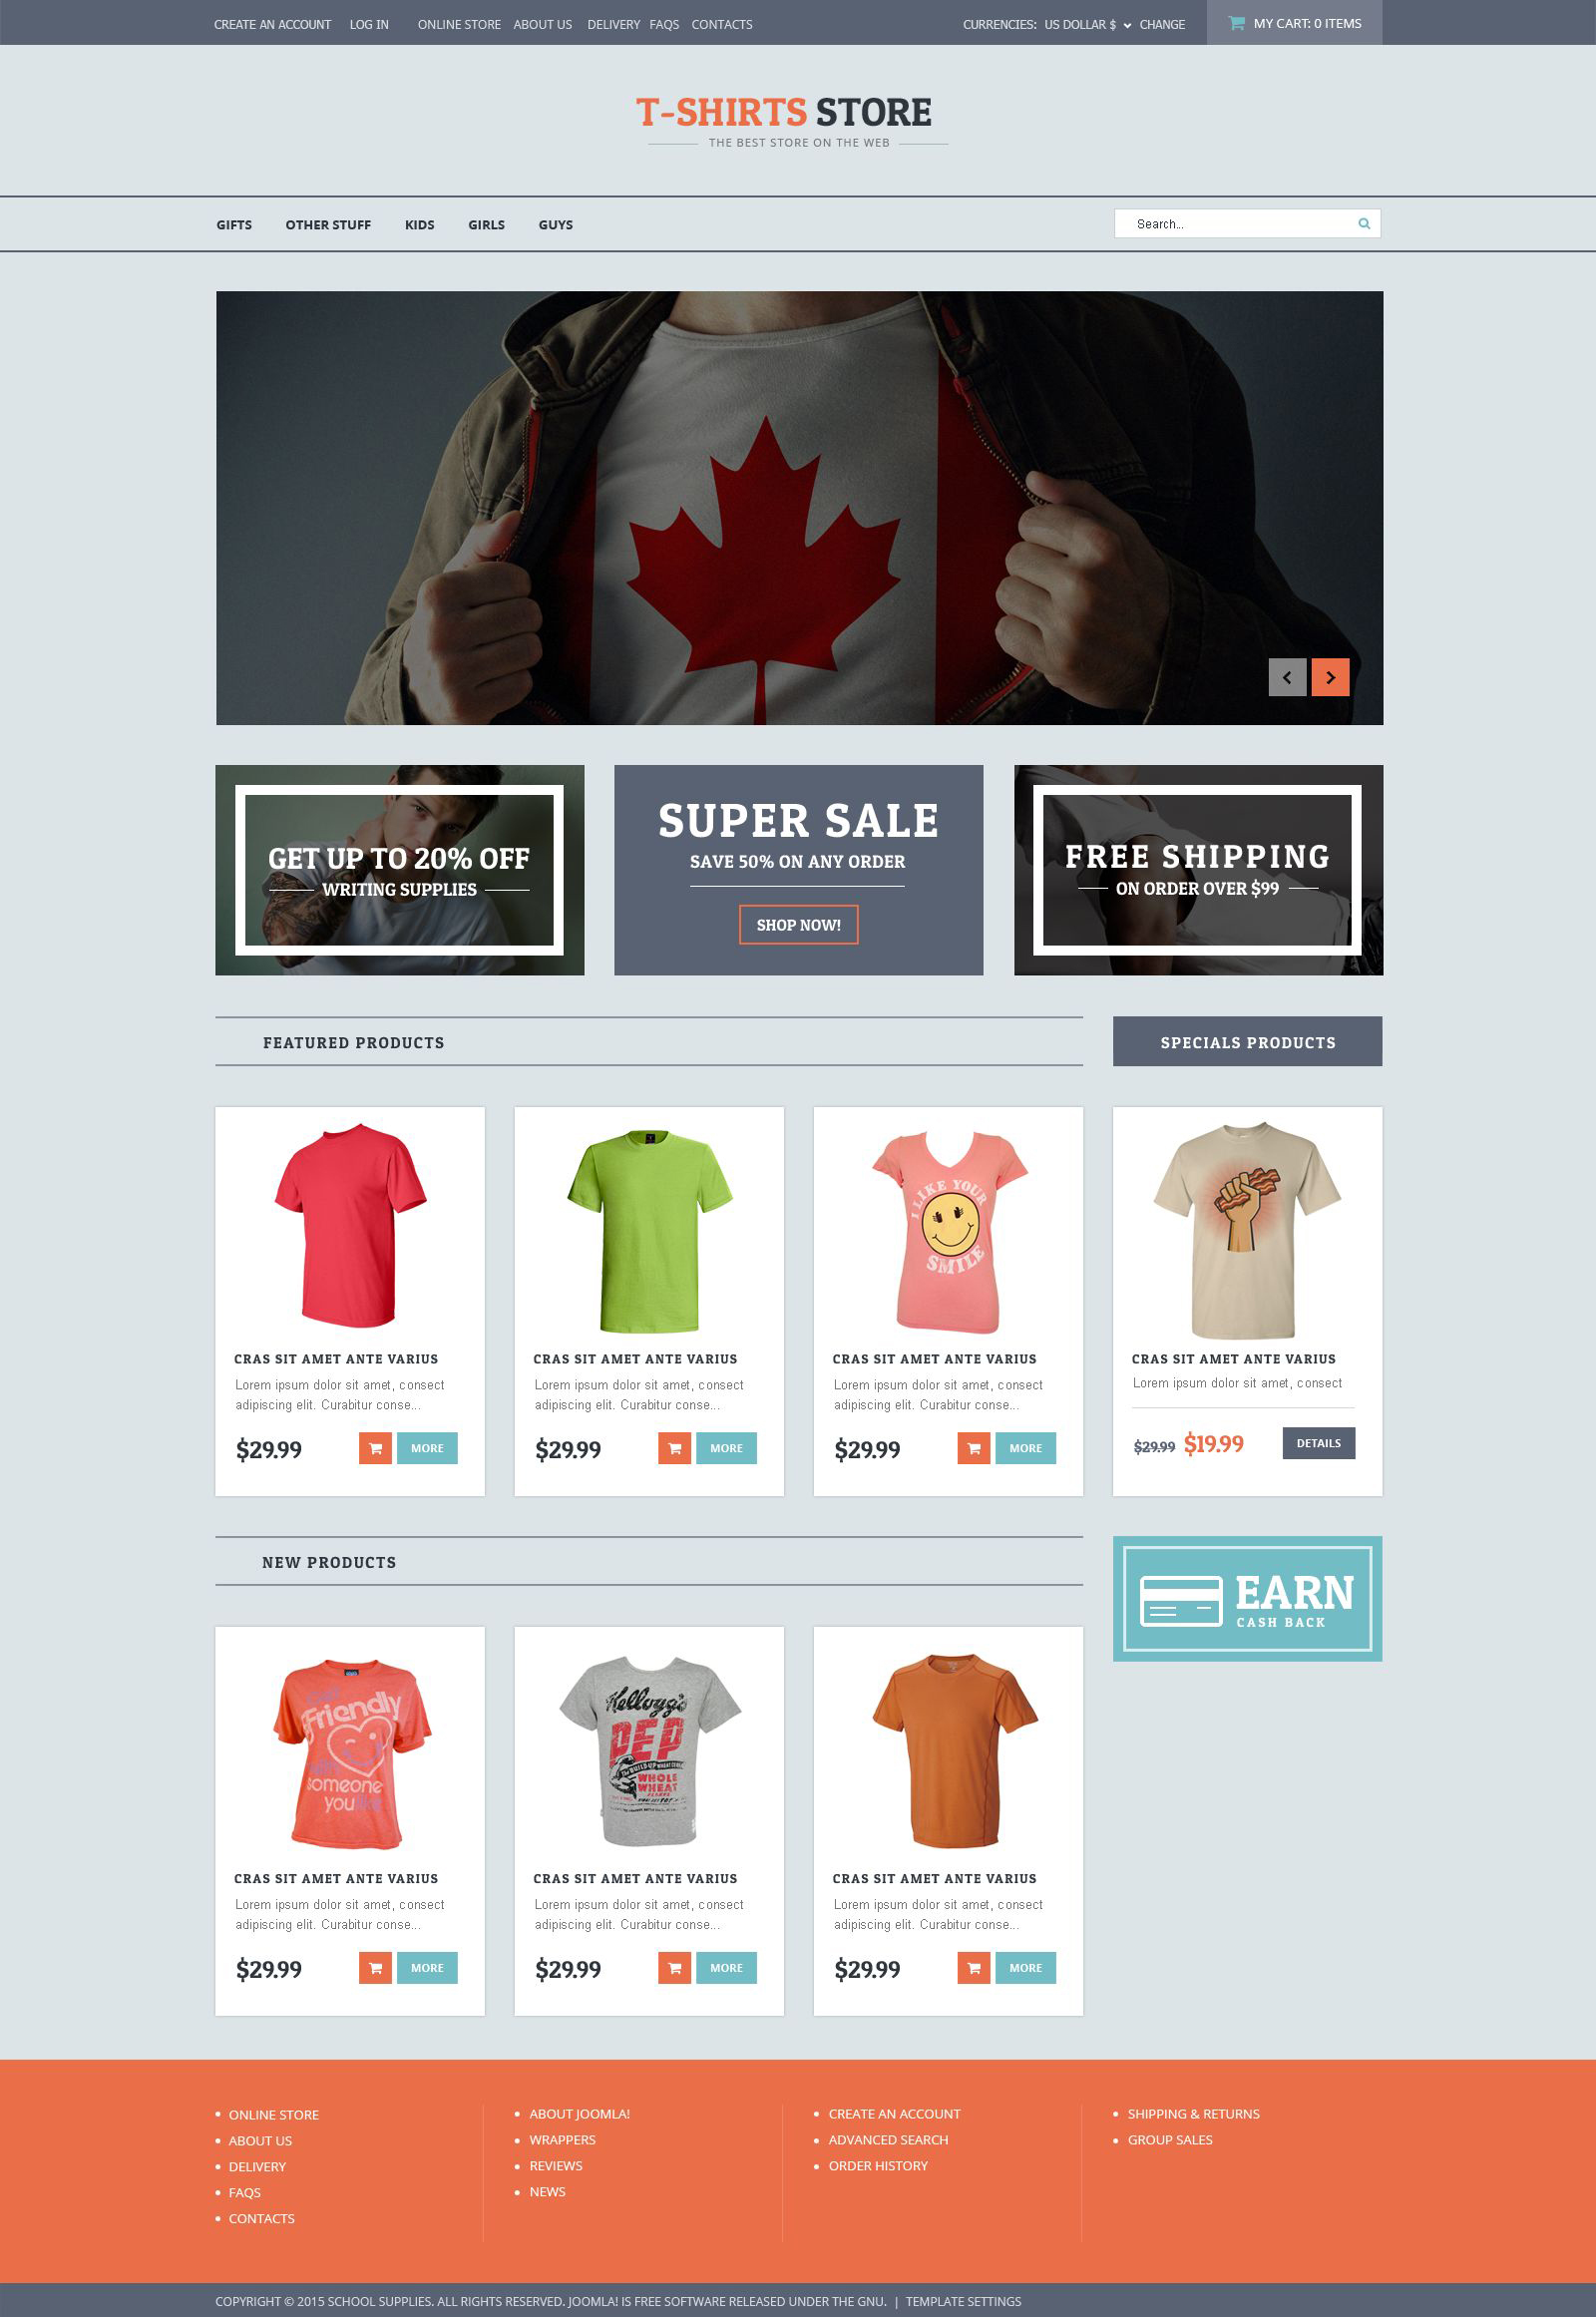 The T-shirts Clothes Online Shop VirtueMart Design 53834, one of the best VirtueMart templates of its kind (fashion, most popular), also known as t-shirts clothes online shop VirtueMart template, fashion VirtueMart template, pant VirtueMart template, sweatshirt VirtueMart template, belt VirtueMart template, accessory VirtueMart template, denim VirtueMart template, outwear VirtueMart template, pajama VirtueMart template, robe VirtueMart template, sweater VirtueMart template, suit VirtueMart template, short VirtueMart template, underwear VirtueMart template, socks VirtueMart template, wallet VirtueMart template, t-shirt VirtueMart template, jeans VirtueMart template, jacket VirtueMart template, pullover VirtueMart template, swimsuit VirtueMart template, thong VirtueMart template, coverall VirtueMart template, bag VirtueMart template, shoes VirtueMart template, dress VirtueMart template, tie VirtueMart template, brassier VirtueMart template, prices VirtueMart template, eye VirtueMart template, wear VirtueMart template, perfumes and related with t-shirts clothes online shop, fashion, pant, sweatshirt, belt, accessory, denim, outwear, pajama, robe, sweater, suit, short, underwear, socks, wallet, t-shirt, jeans, jacket, pullover, swimsuit, thong, coverall, bag, shoes, dress, tie, brassier, prices, eye, wear, perfumes, etc.